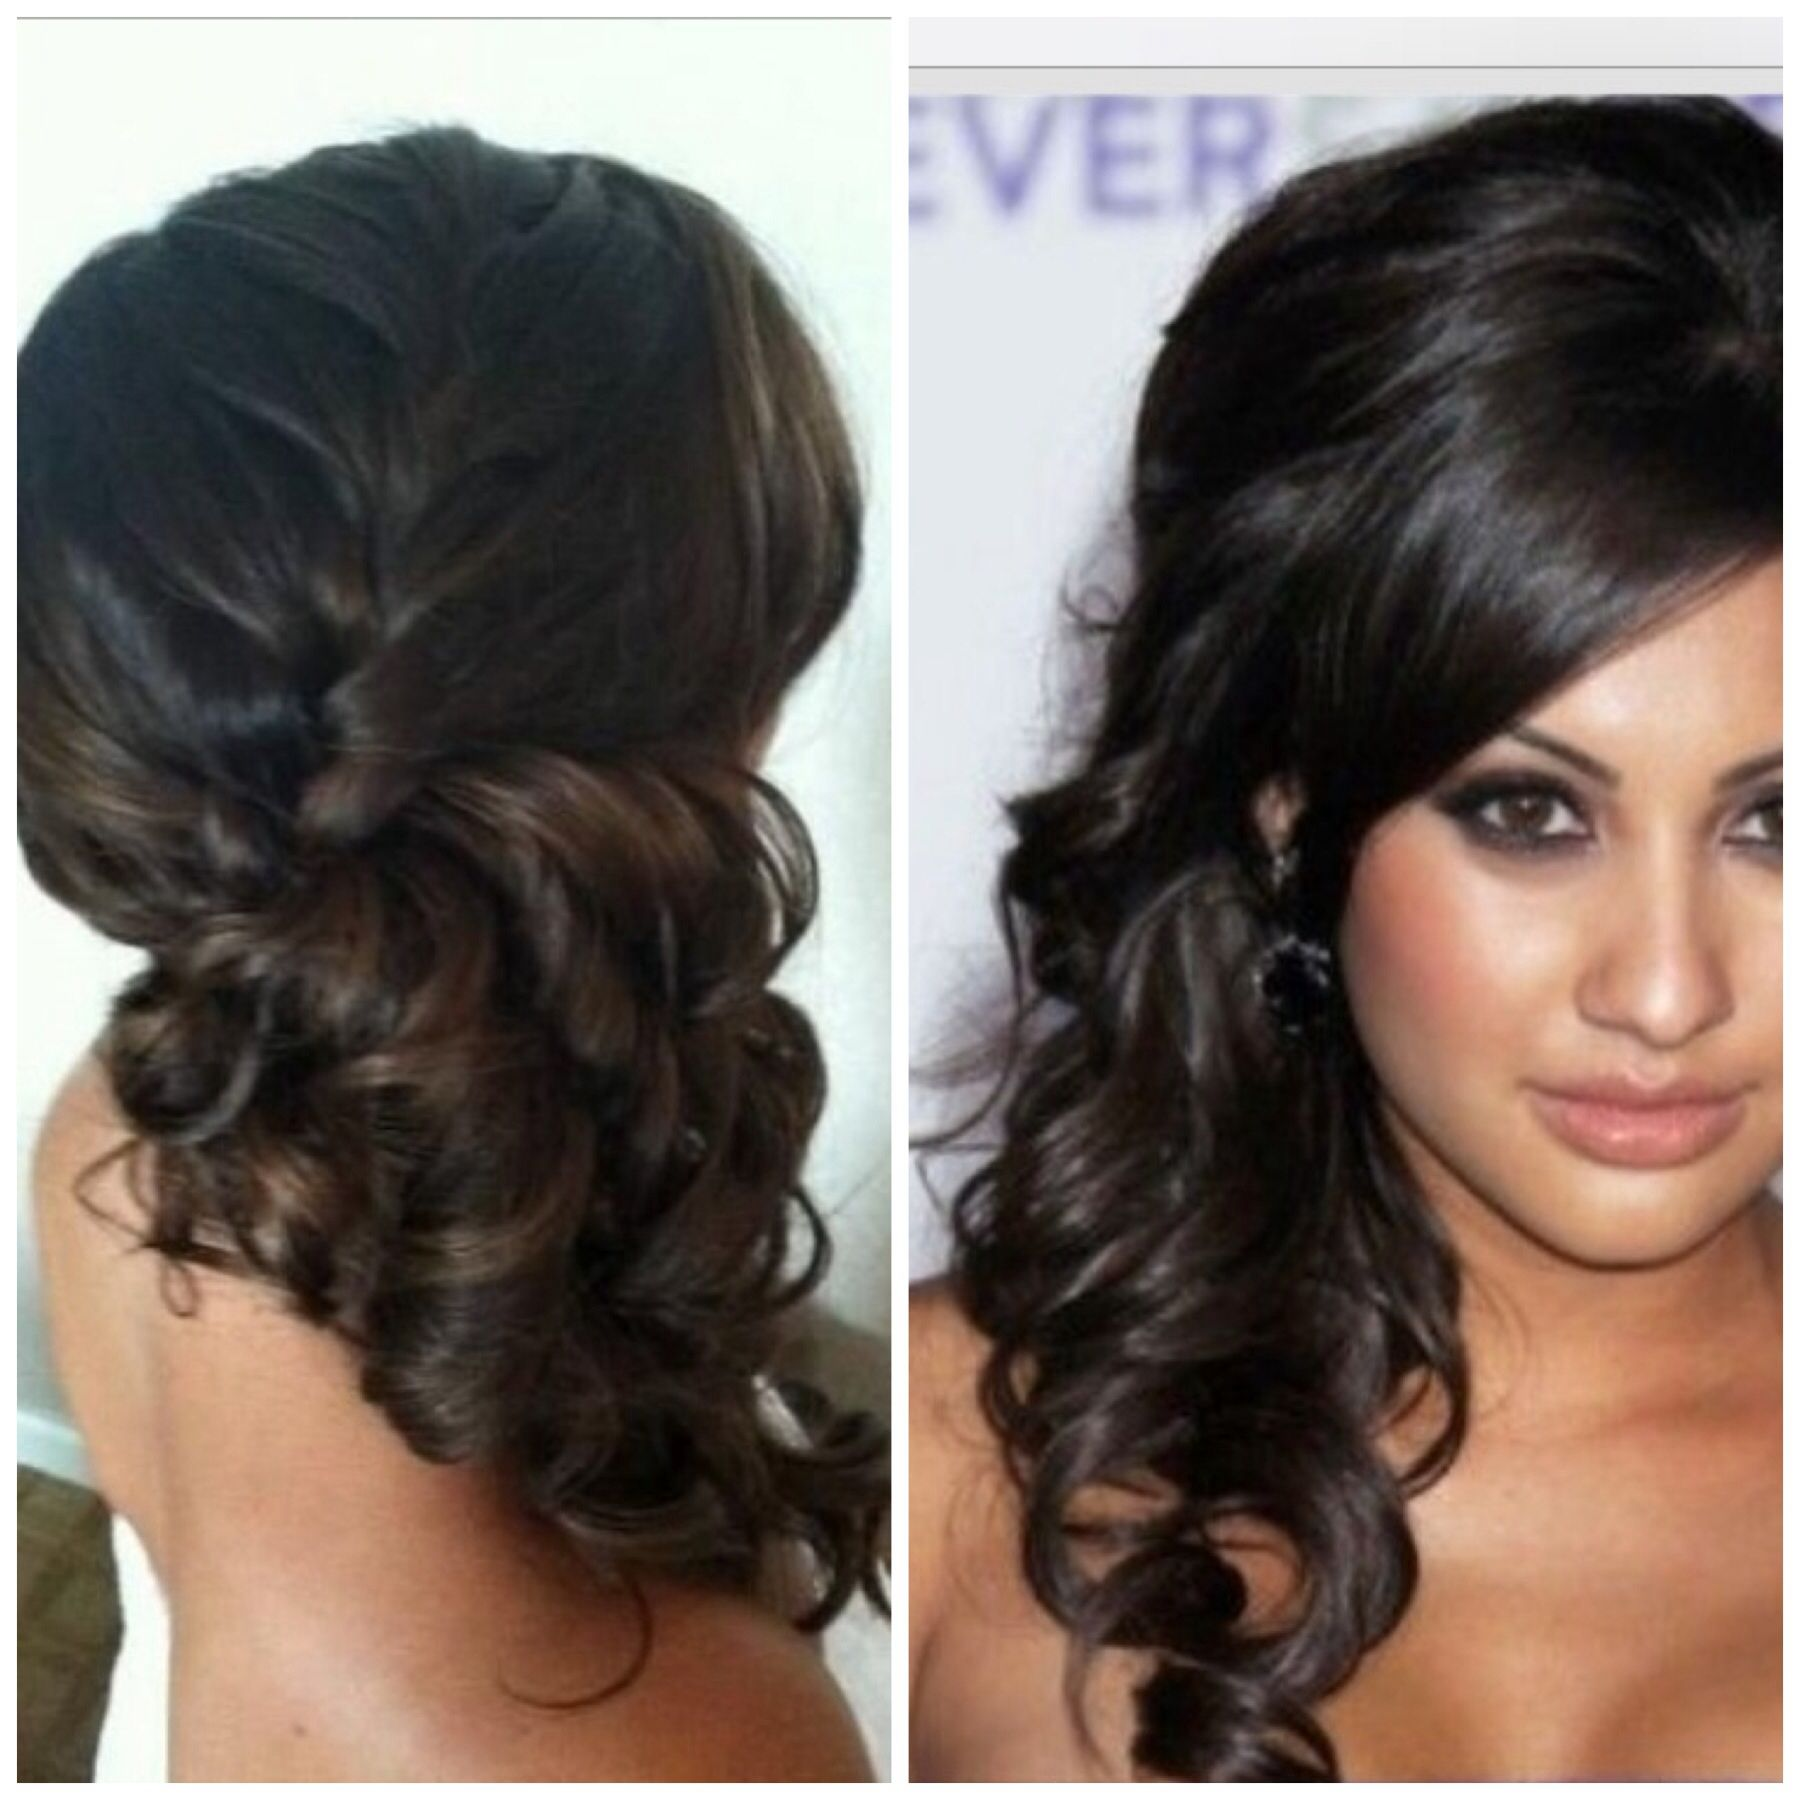 French Braid Side Pony With Curls Bridesmaid Hair Inspiration For Steph S Wedding Bridesmaid Hair Up Wedding Hair Side Side Hairstyles